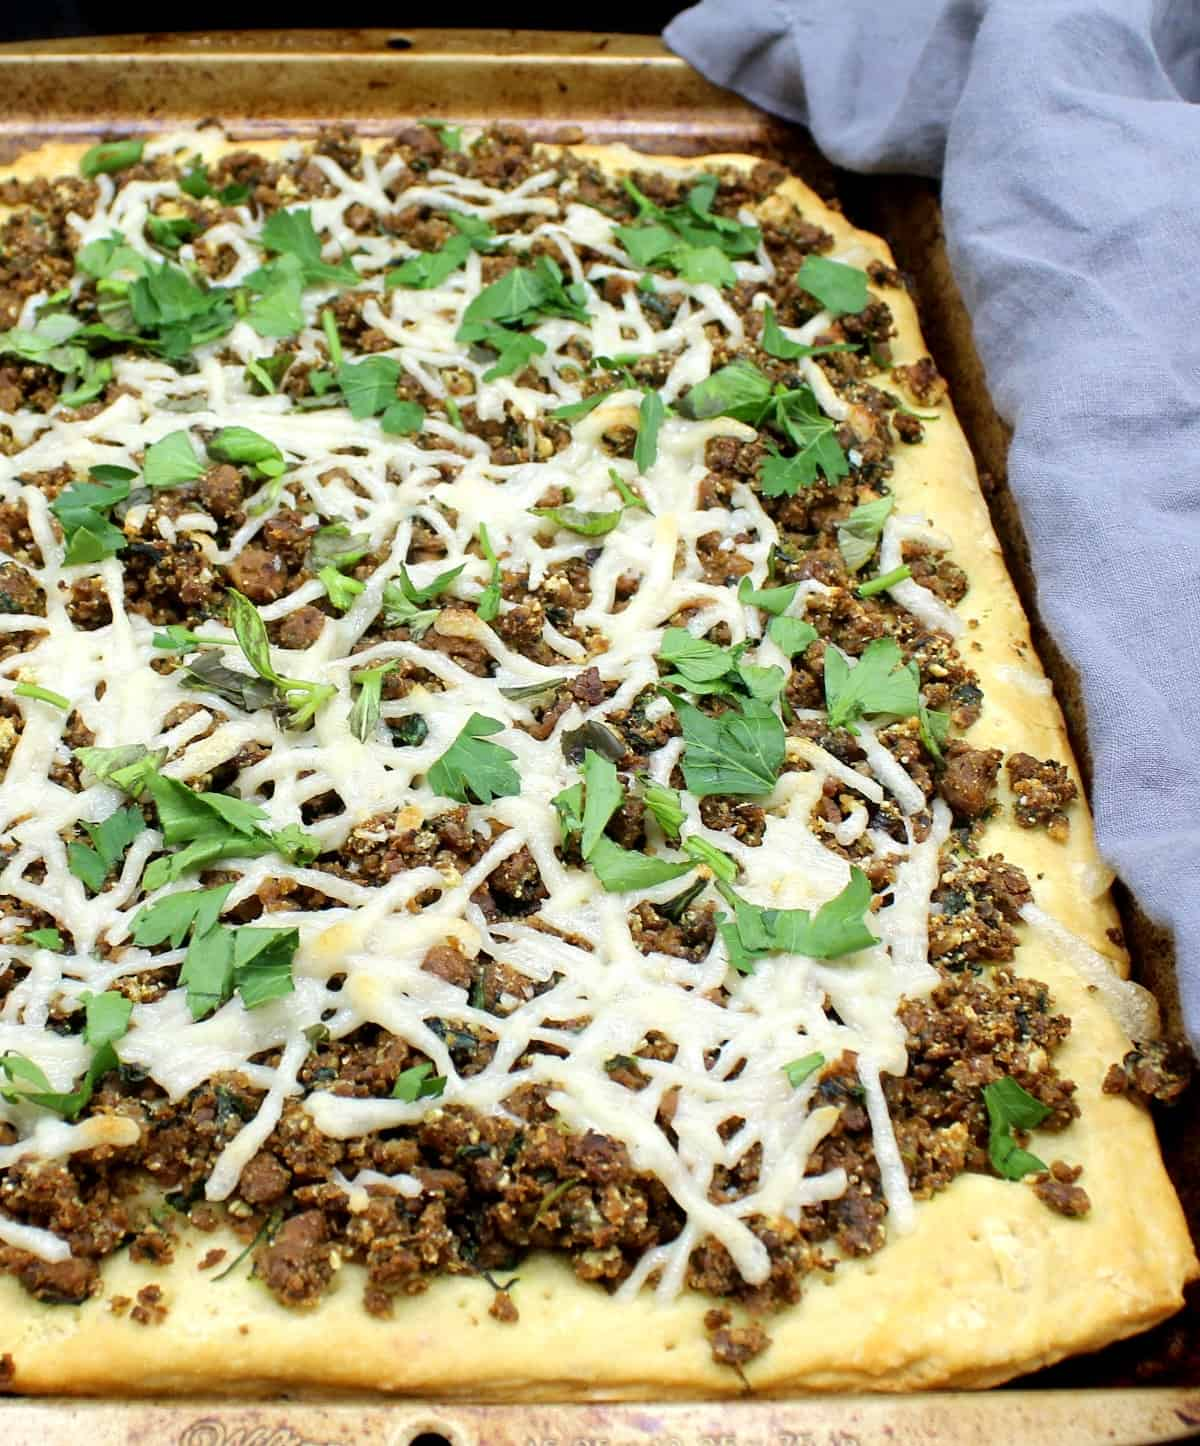 A closeup of vegan breakfast sausage pizza with a biscuit crust loaded with cheese and parsley and other herbs on a baking sheet.